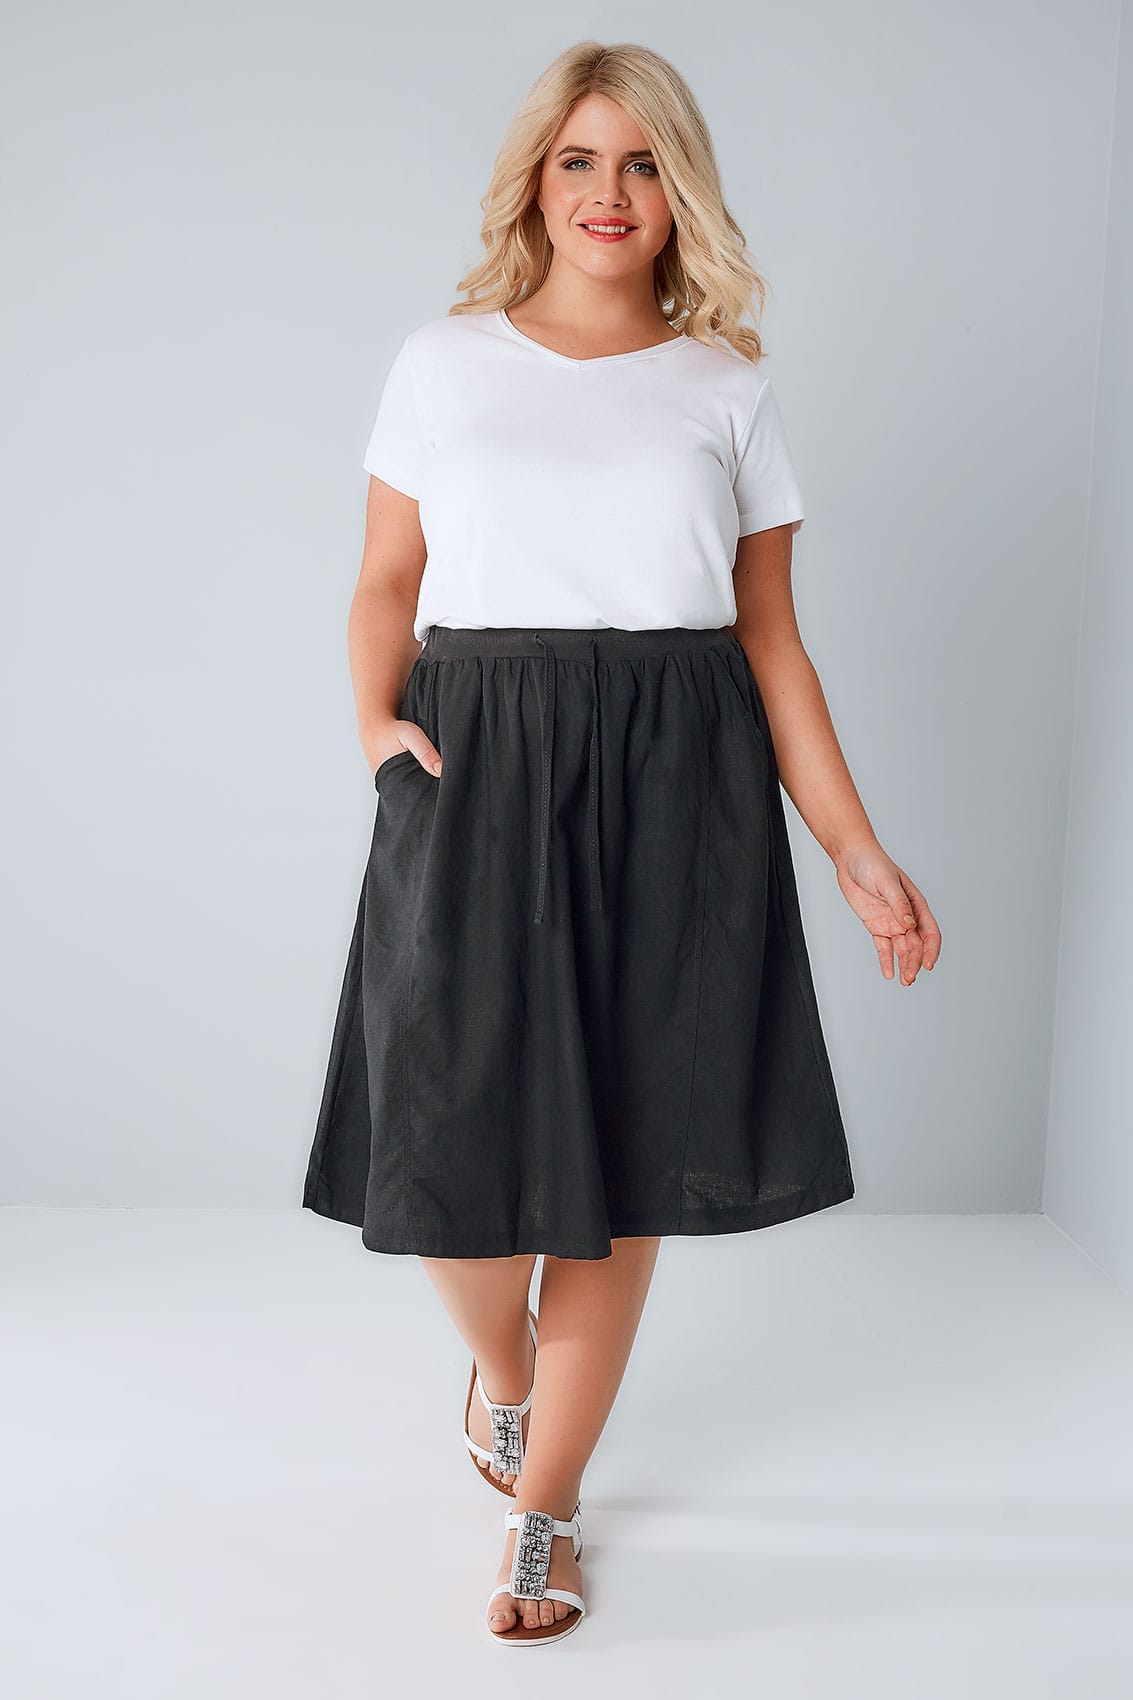 Mar 11,  · More Midi Skirts! | Plus Size Modcloth Haul girlinthebluehat. Plus Size Spring Clothing Haul! Wet Seal+, Vinted, Ebay, Walmart ect! How To Style The Midi Skirt .